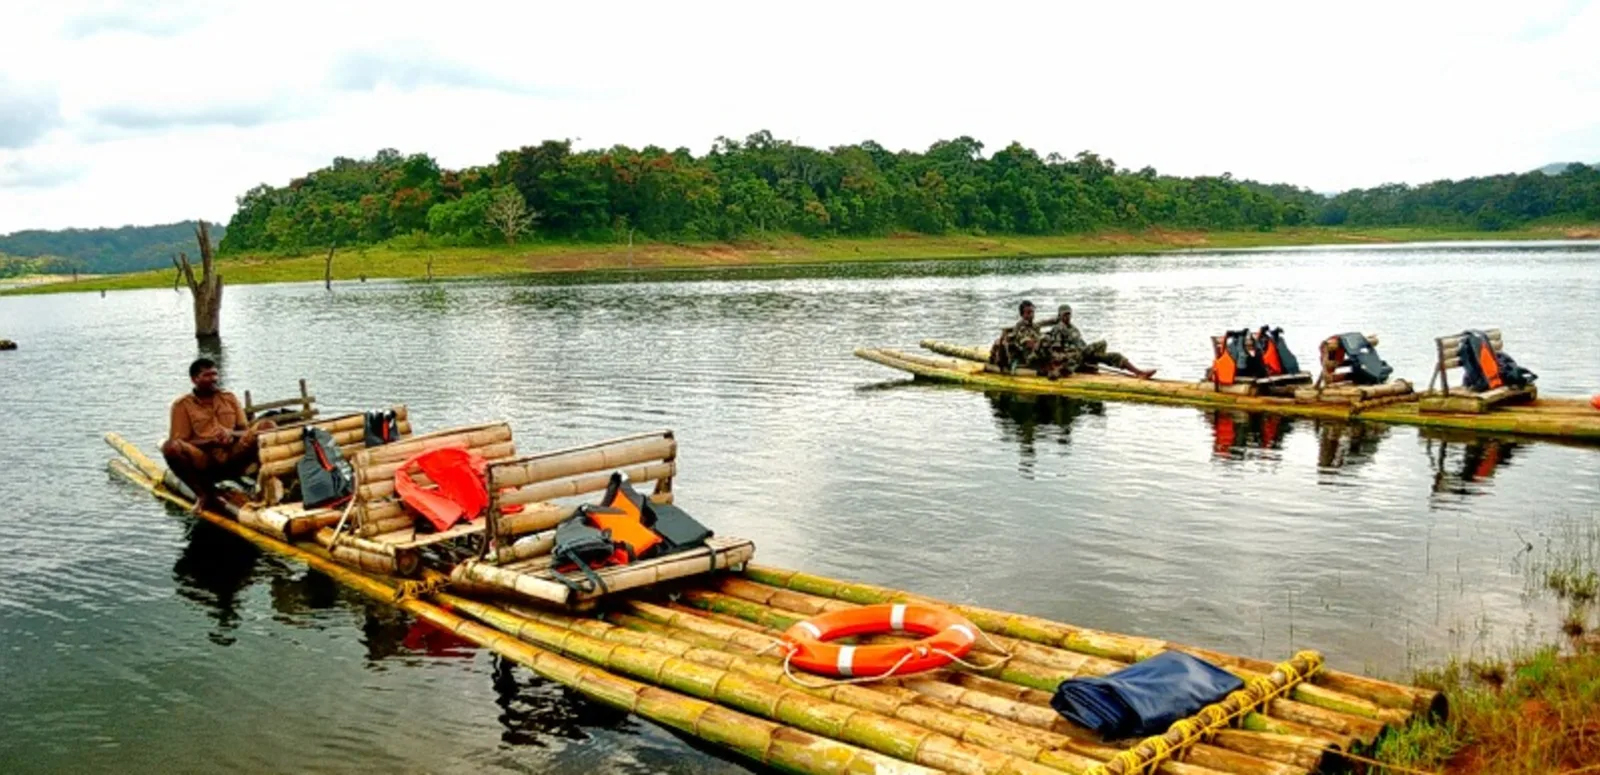 Go For Bamboo Rafting at Kuruva Island - Things Which One Must Not Miss in Wayanad